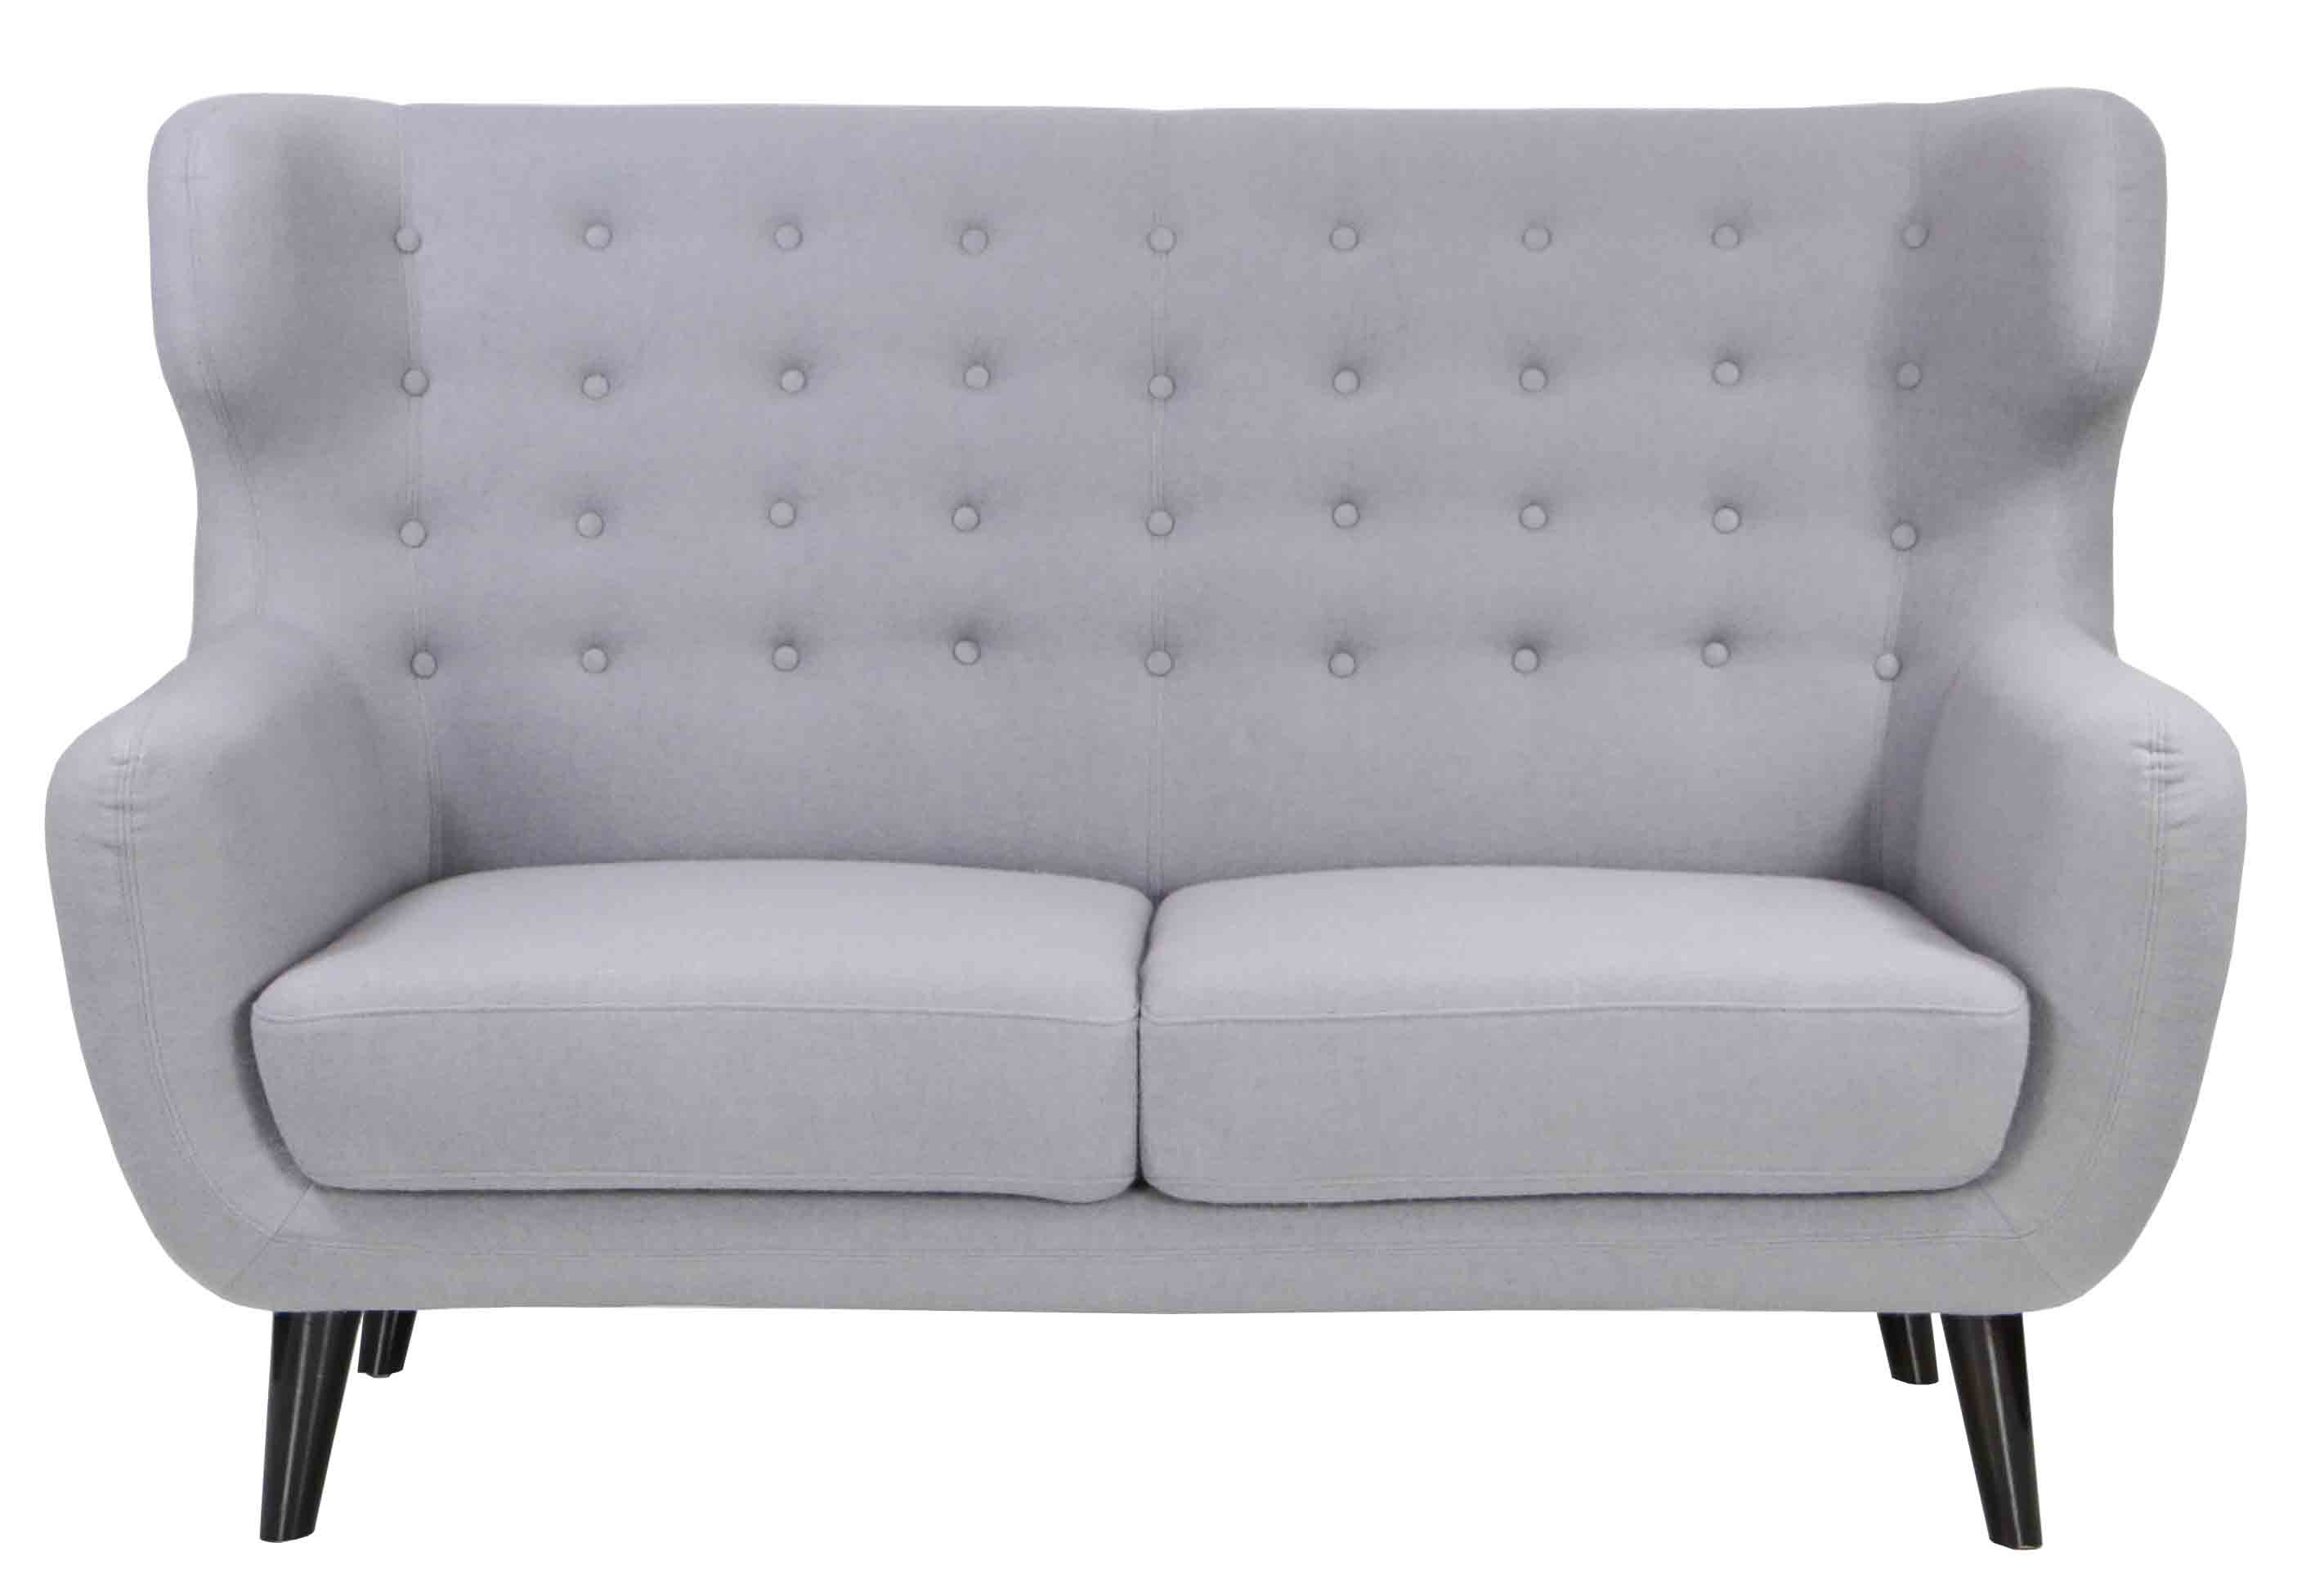 Replica wingback designer 2 seater sofa light grey for Designer sofa replica